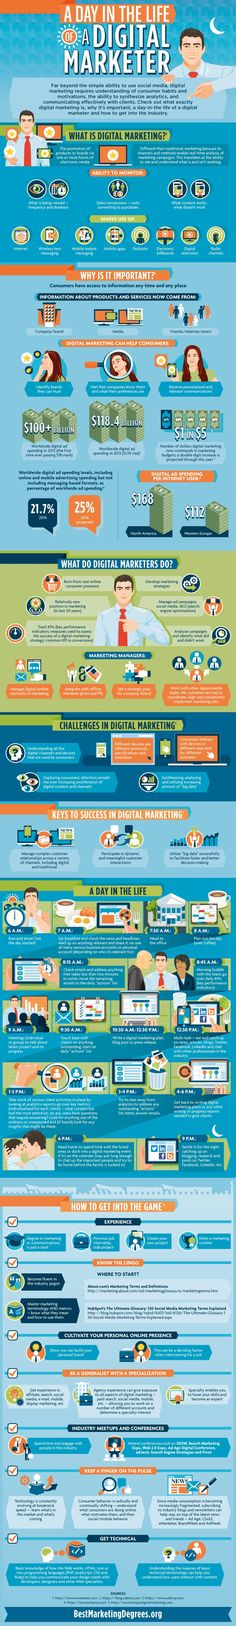 Friday Infographic: A Day in the Life of a Digital Marketer